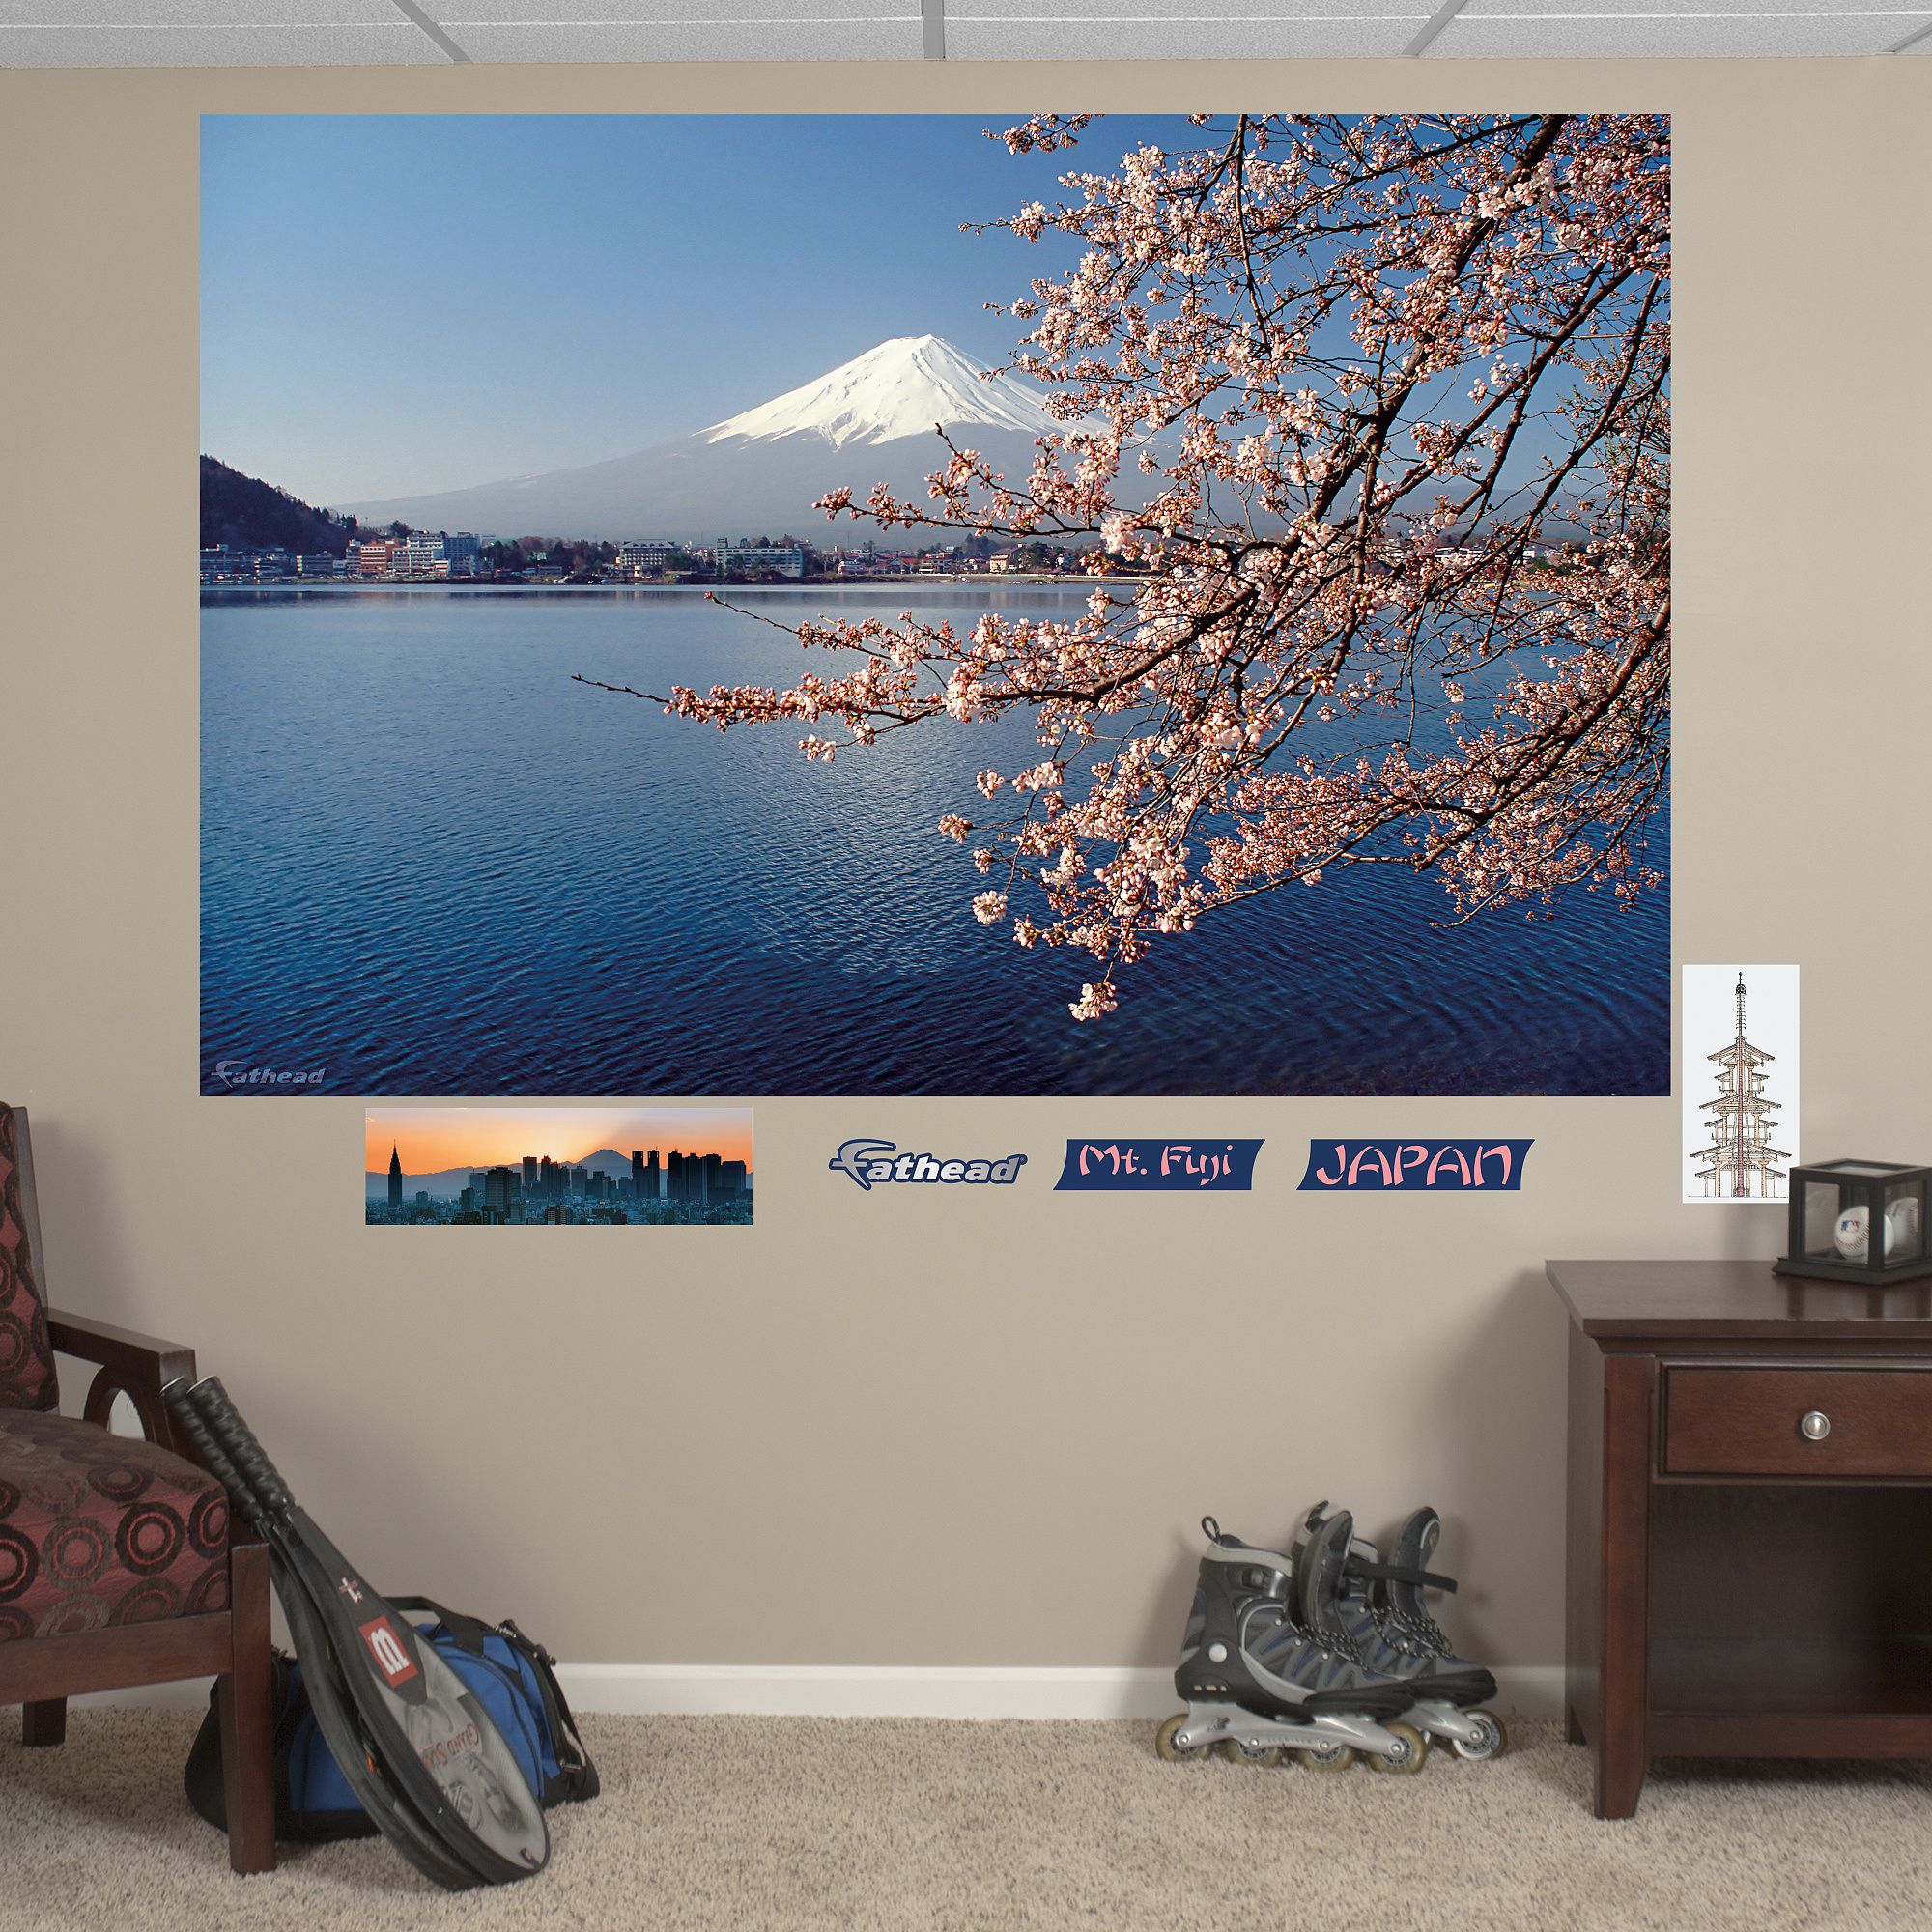 Mt Fuji Mural Mural Wall Decals Japanese Wall